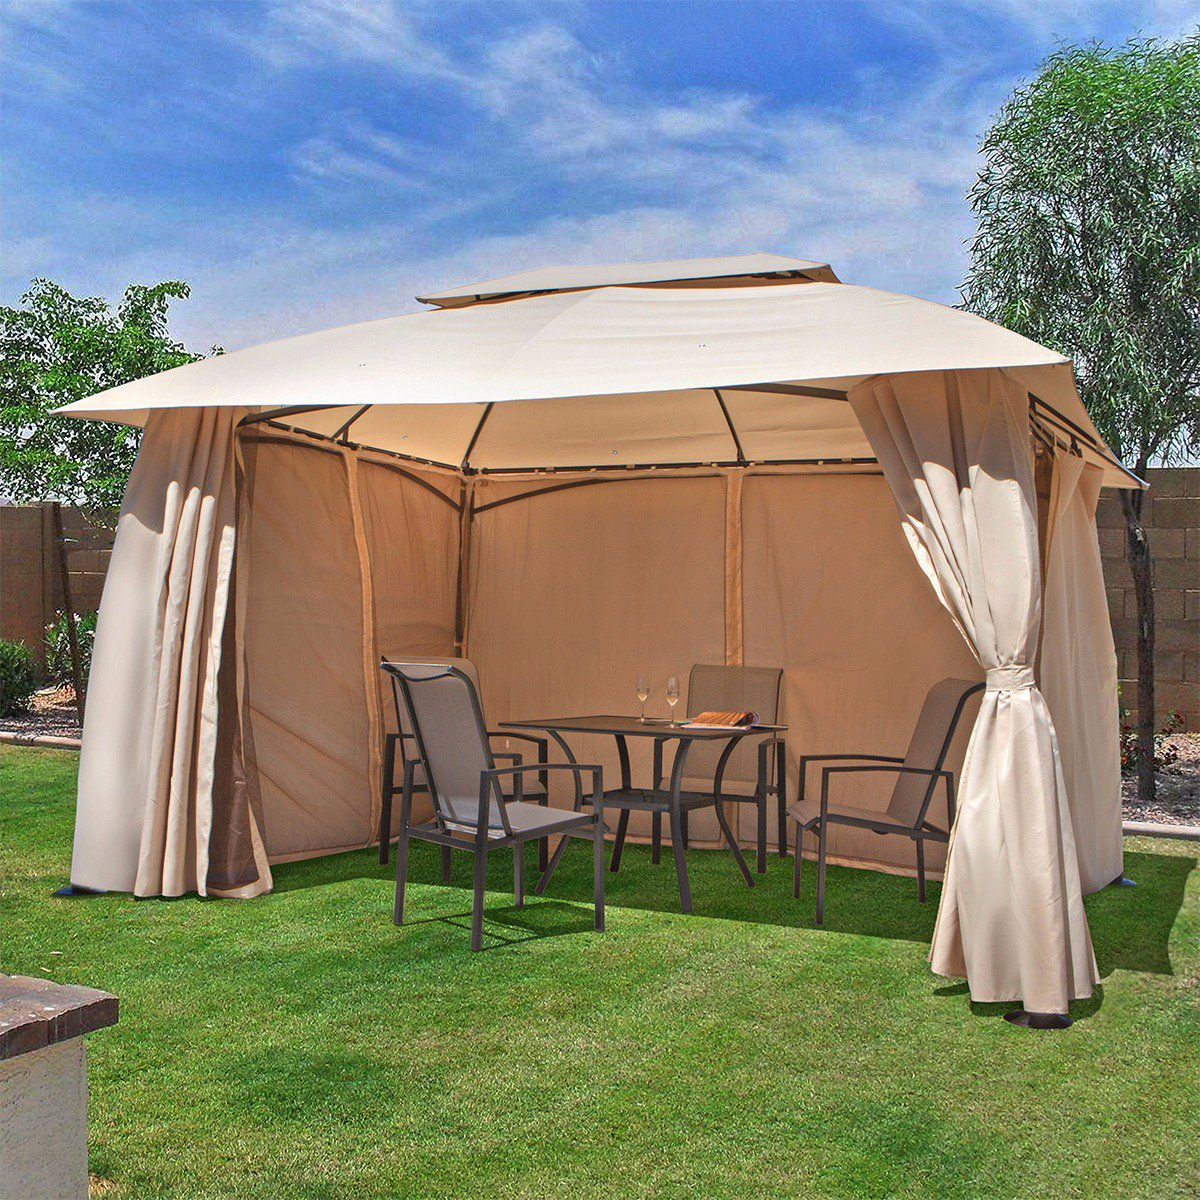 10u0027 X 13u0027 Outdoor Backyard Patio Gazebo Canopy Tent, With Netting